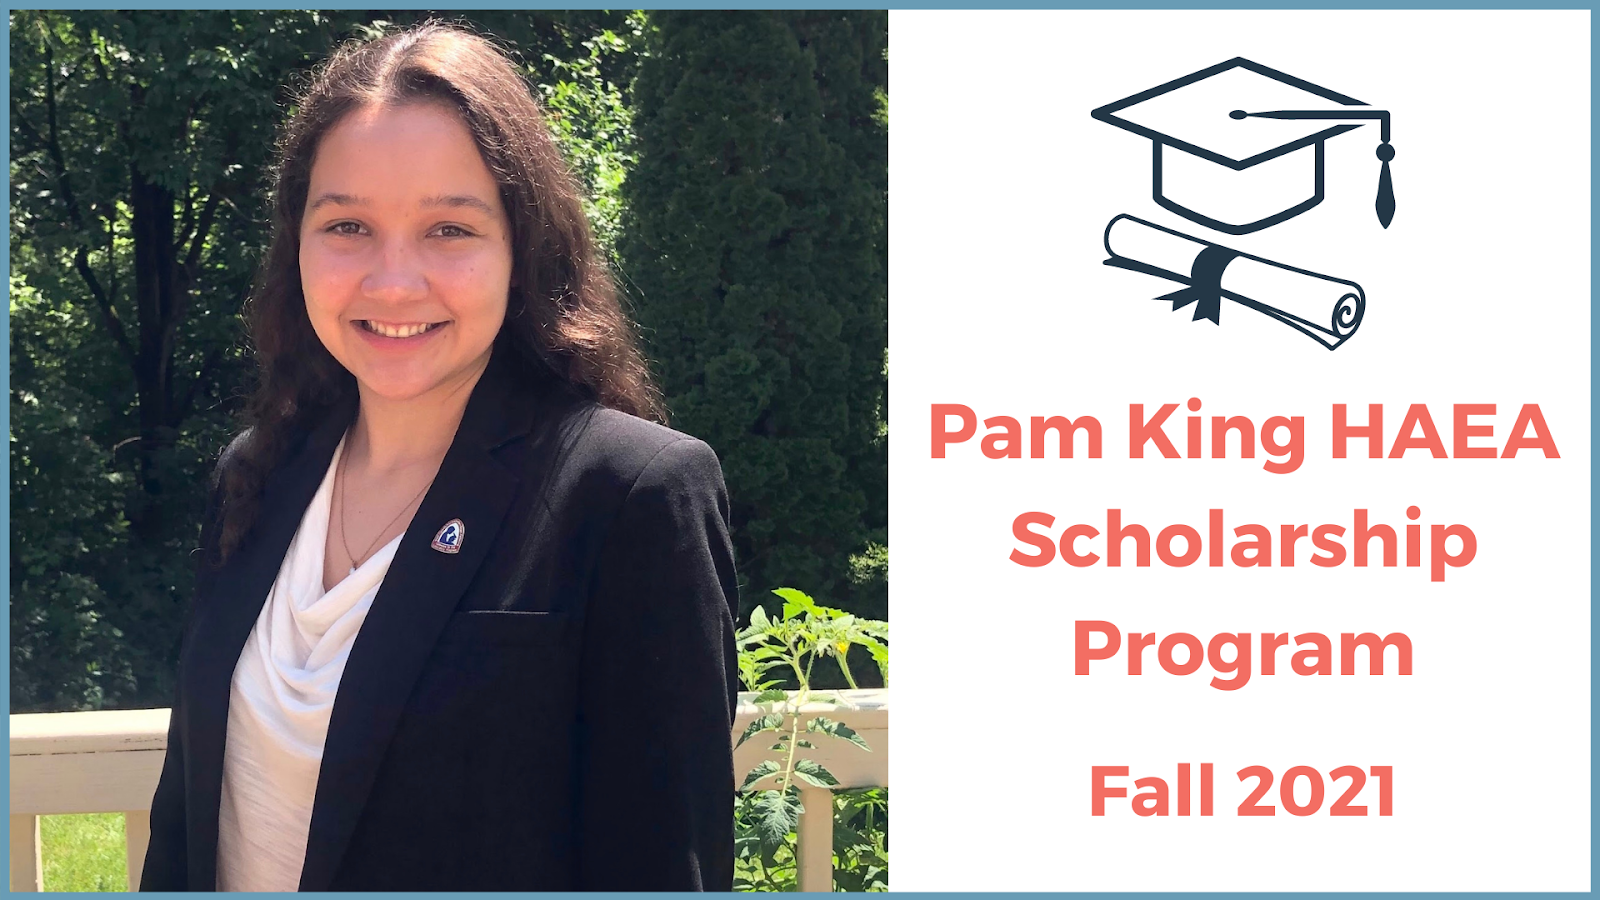 Congratulations to the Fall 2021 Pam King HAEA Scholarship Recipients!